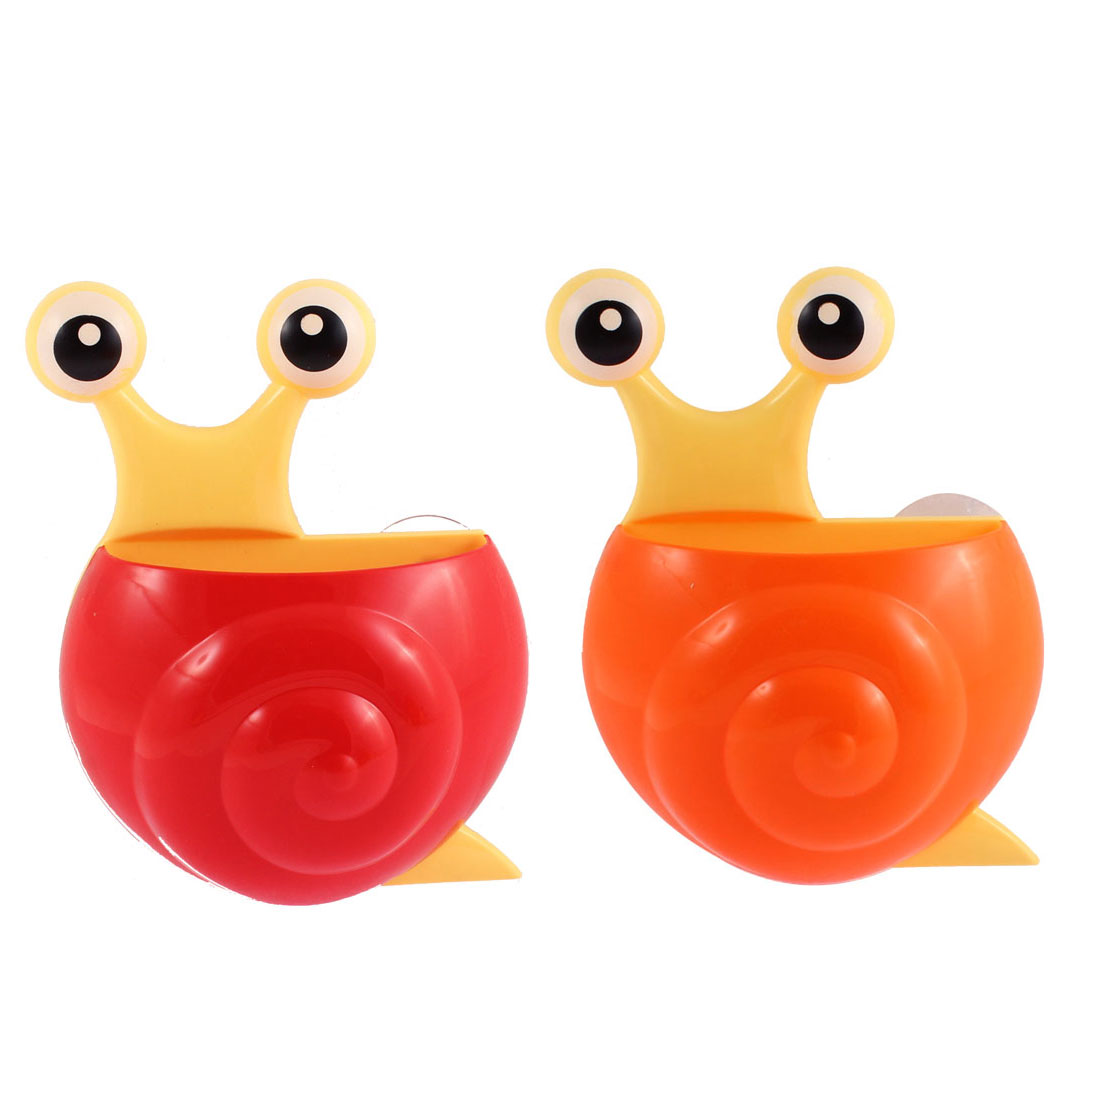 Home Plastic Snail Shape Toothbrush Toothpaste Holder Red Orange 2pcs